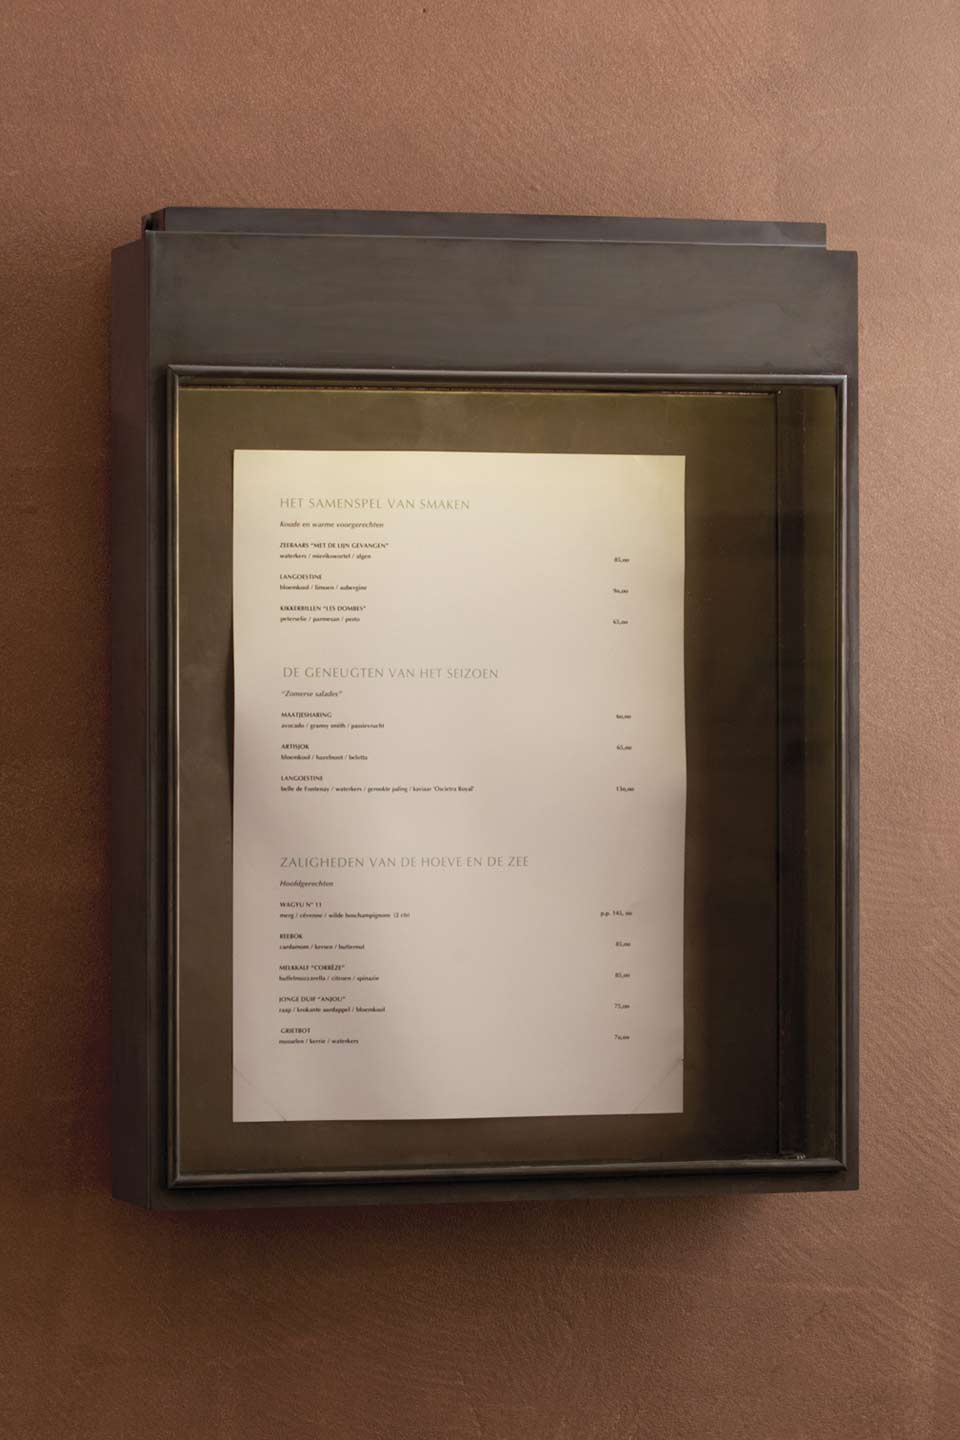 Exterior Wall Lamp Menu Holder For Restaurant Nautic By Tekna - Porte menu restaurant